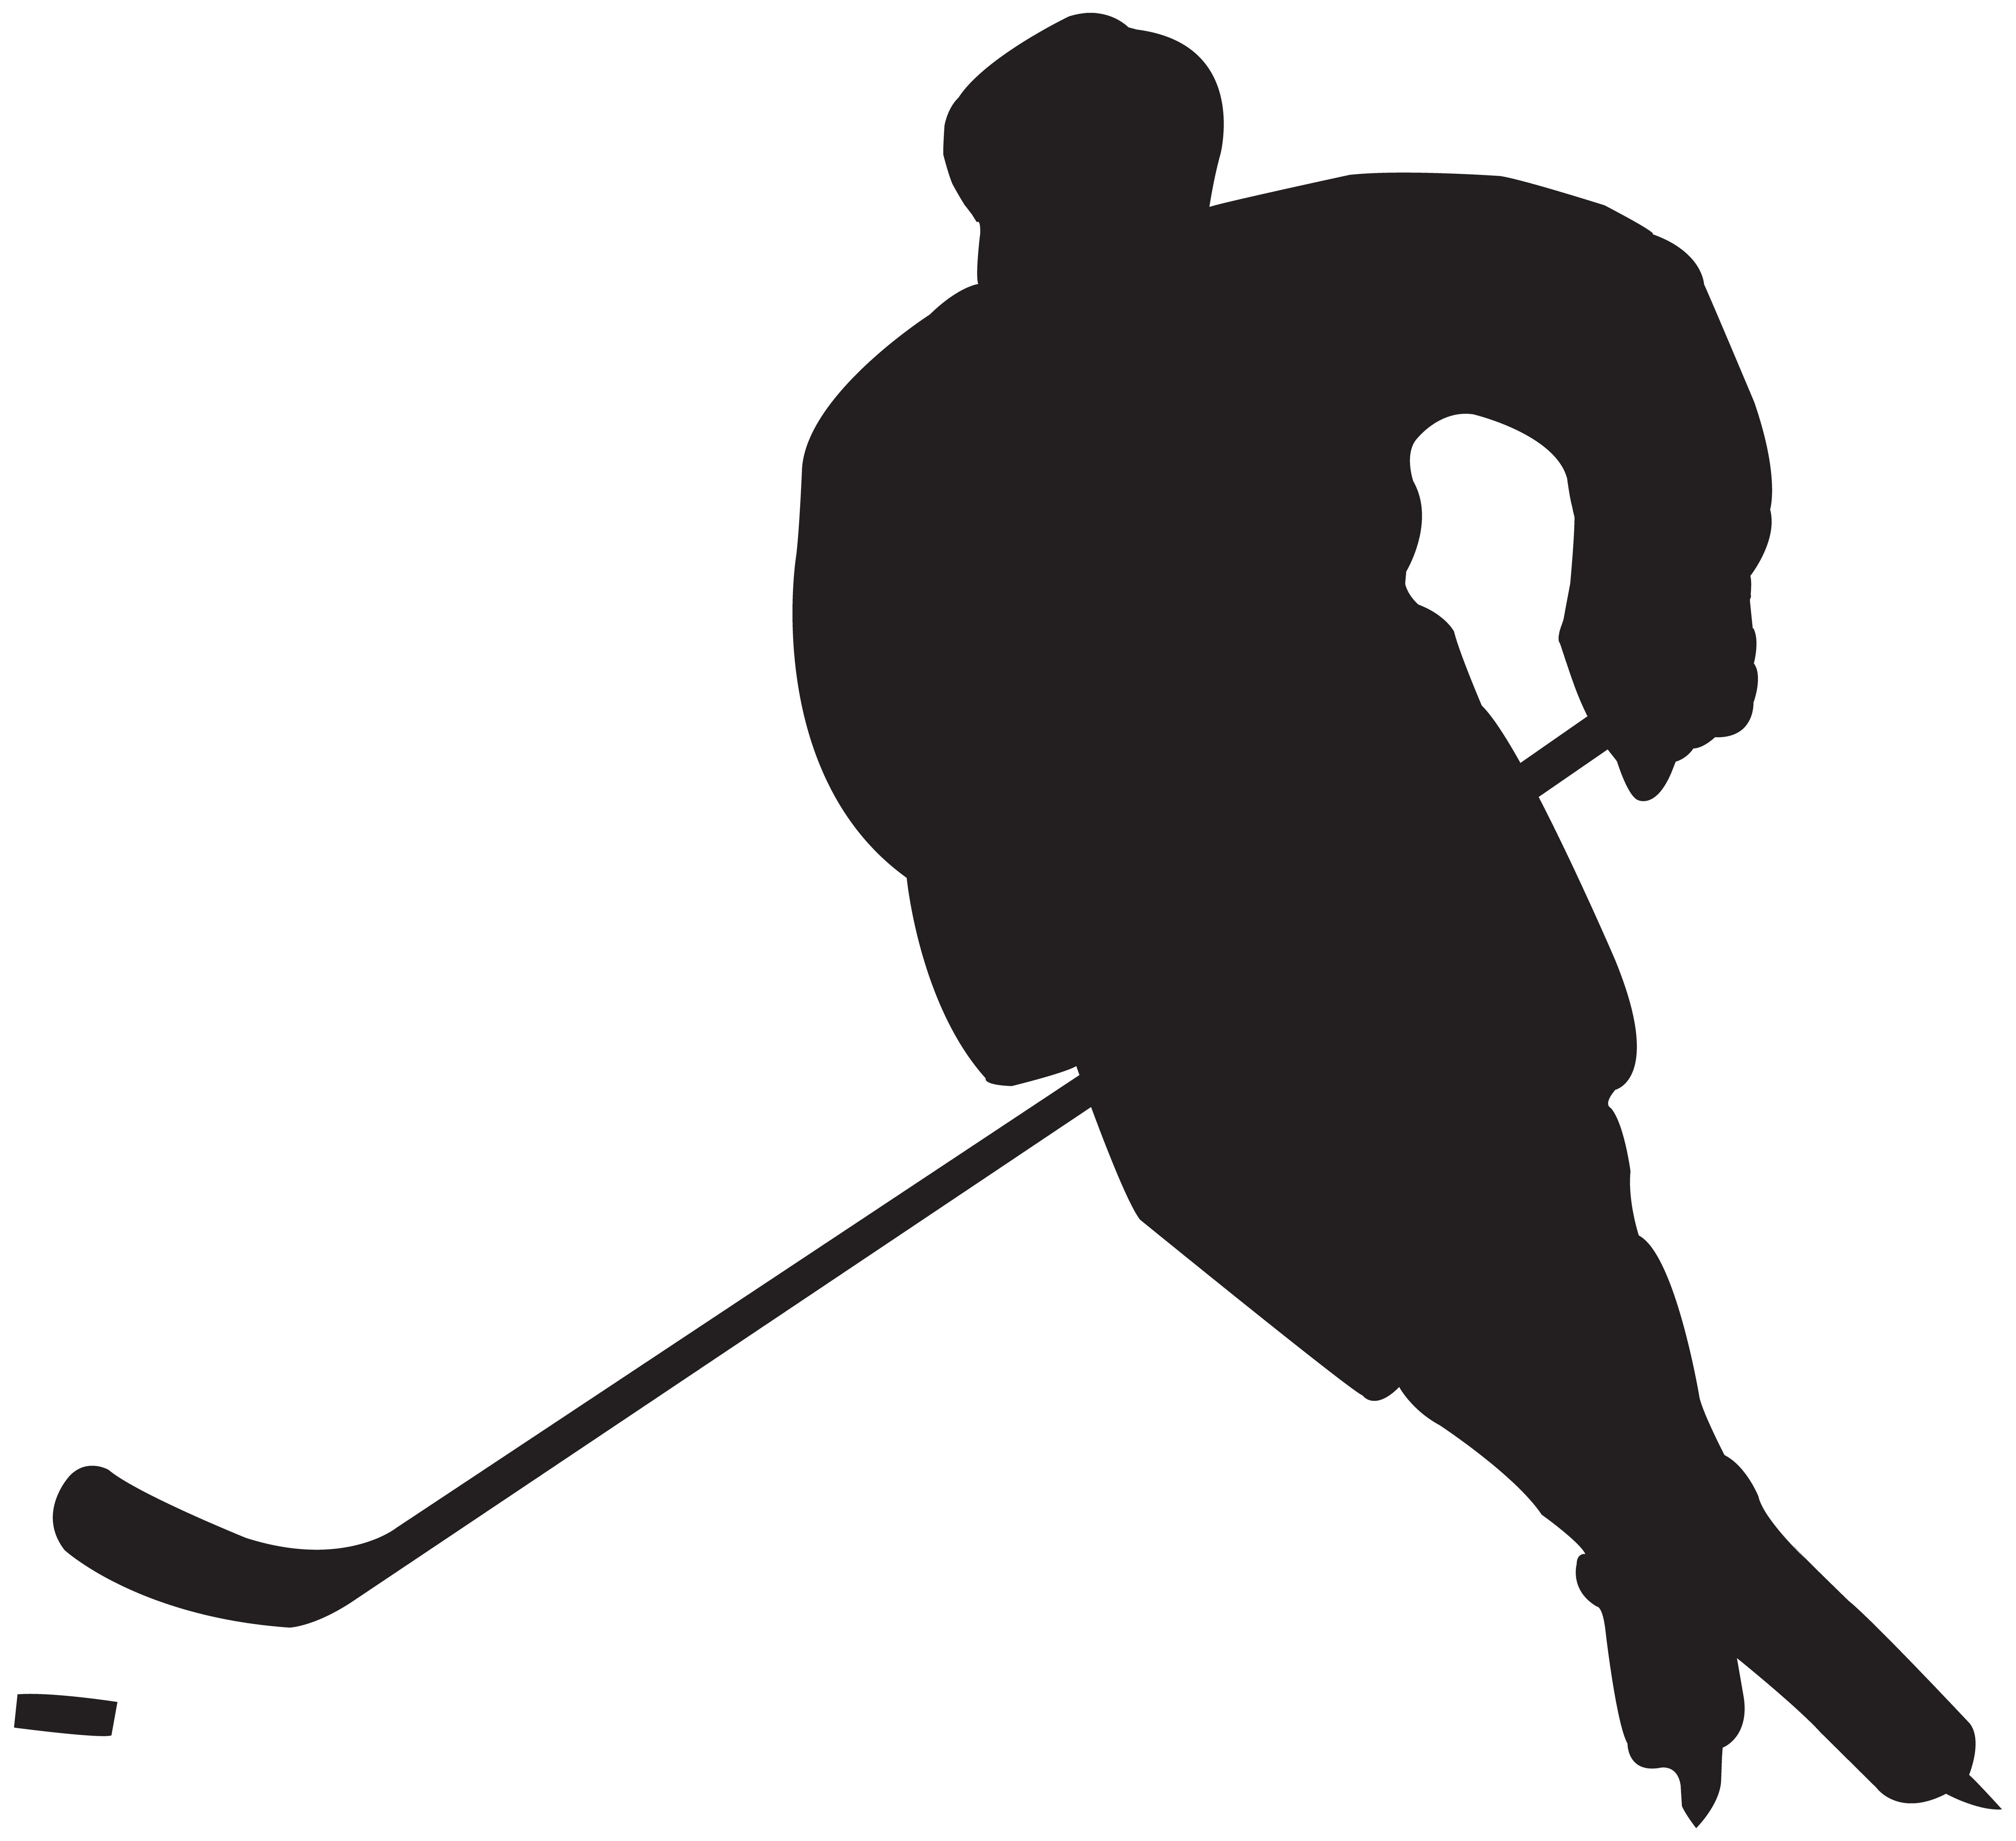 8000x7307 Hockey Silhouette Clipart